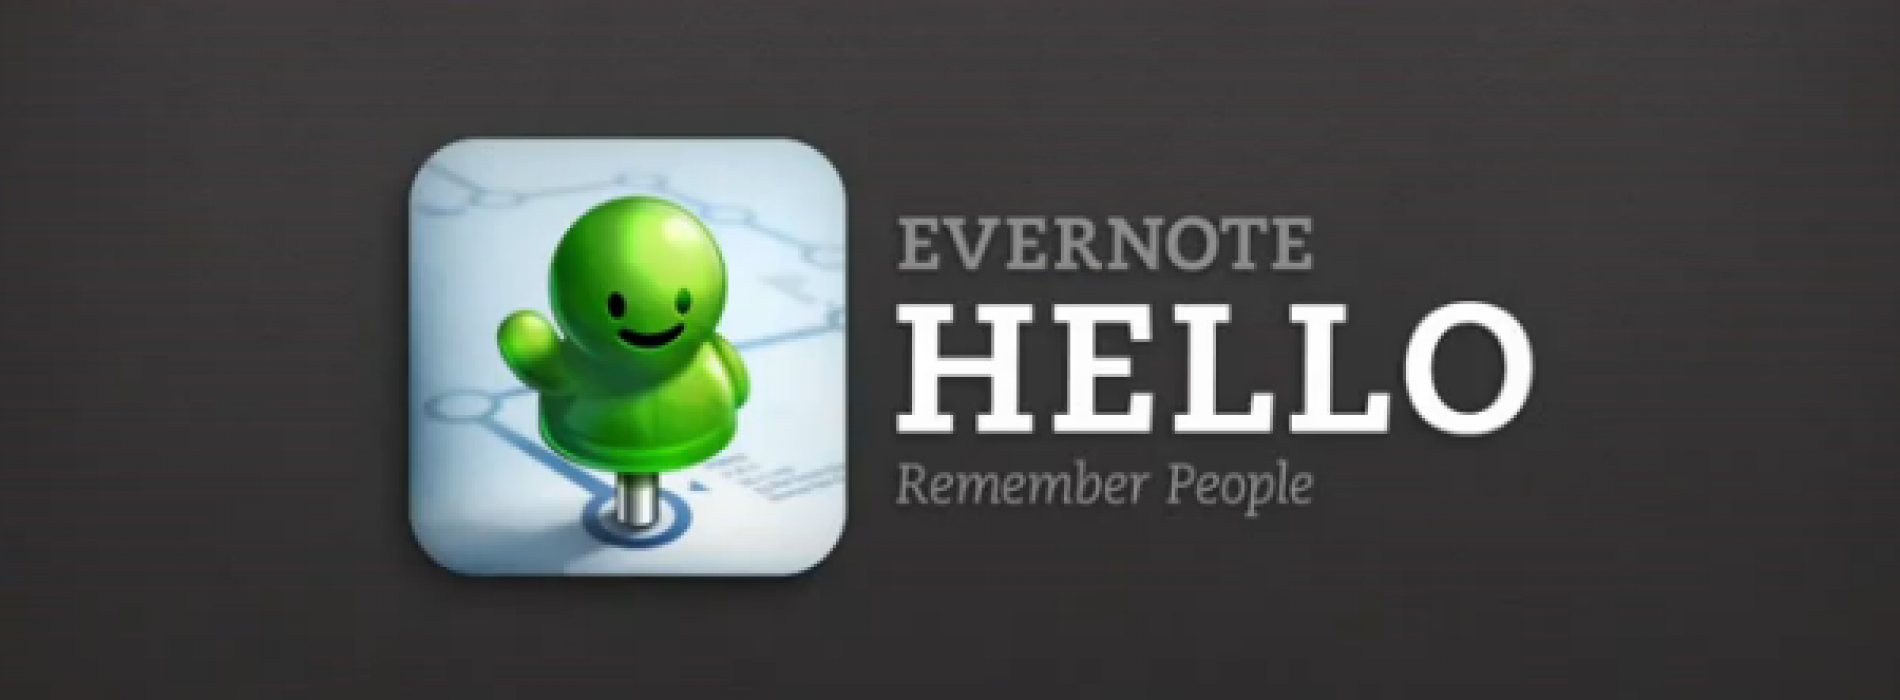 Evernote Hello says Howdy to Android